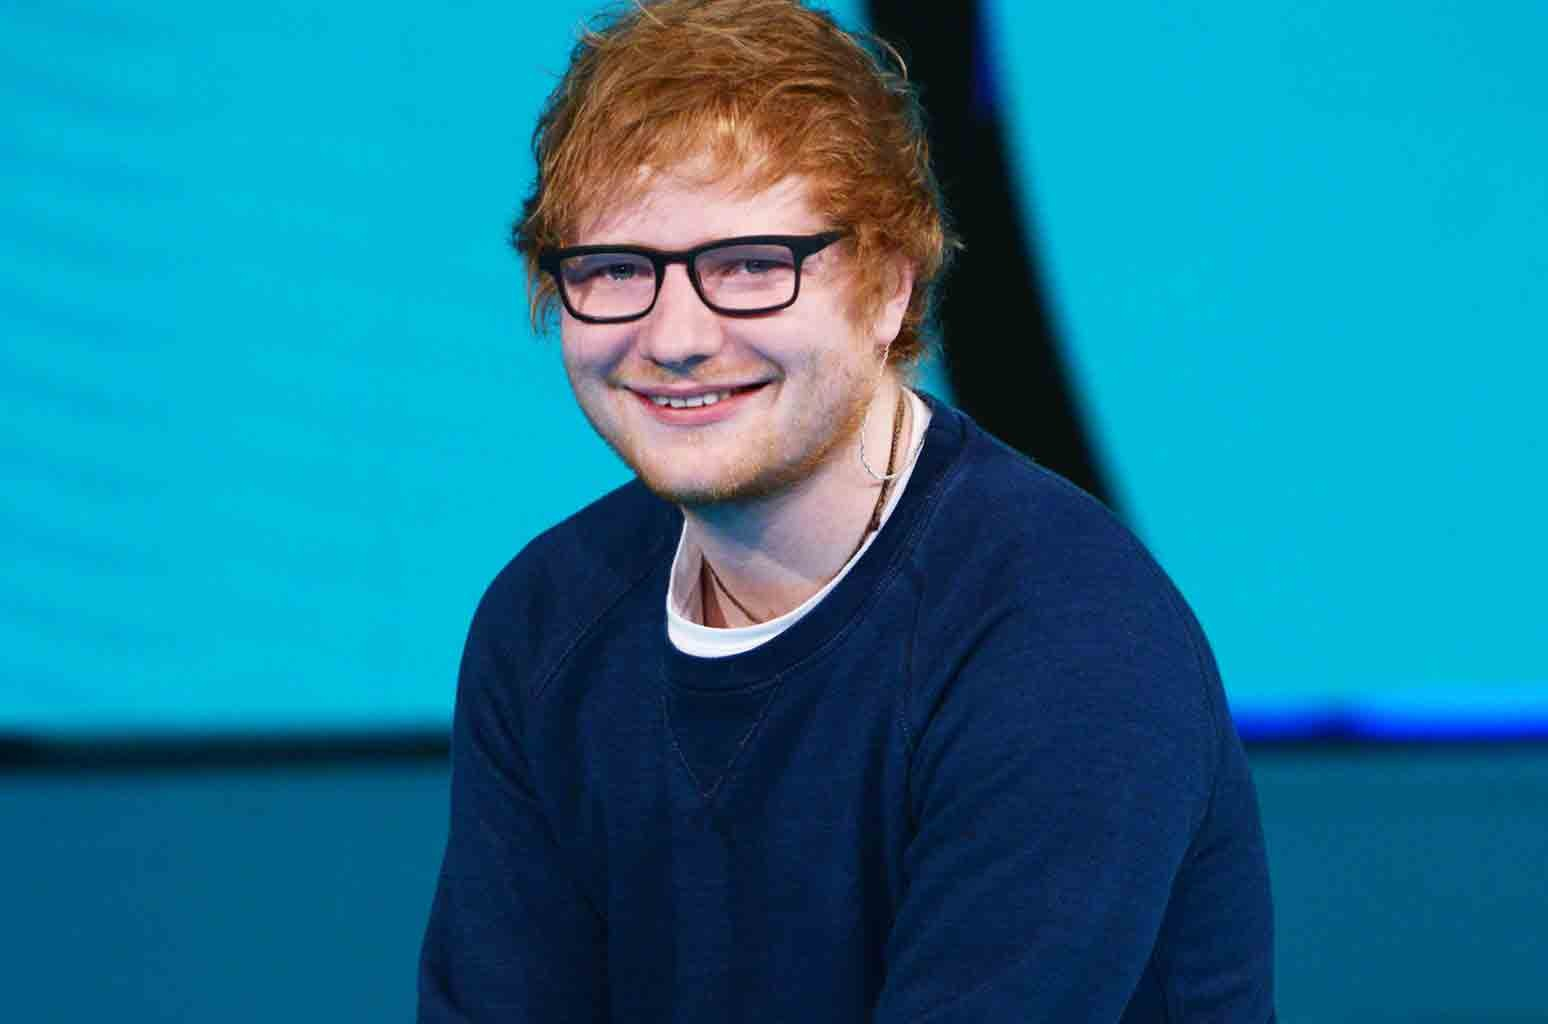 Ed Sheeran photographed on March 12, 2017.